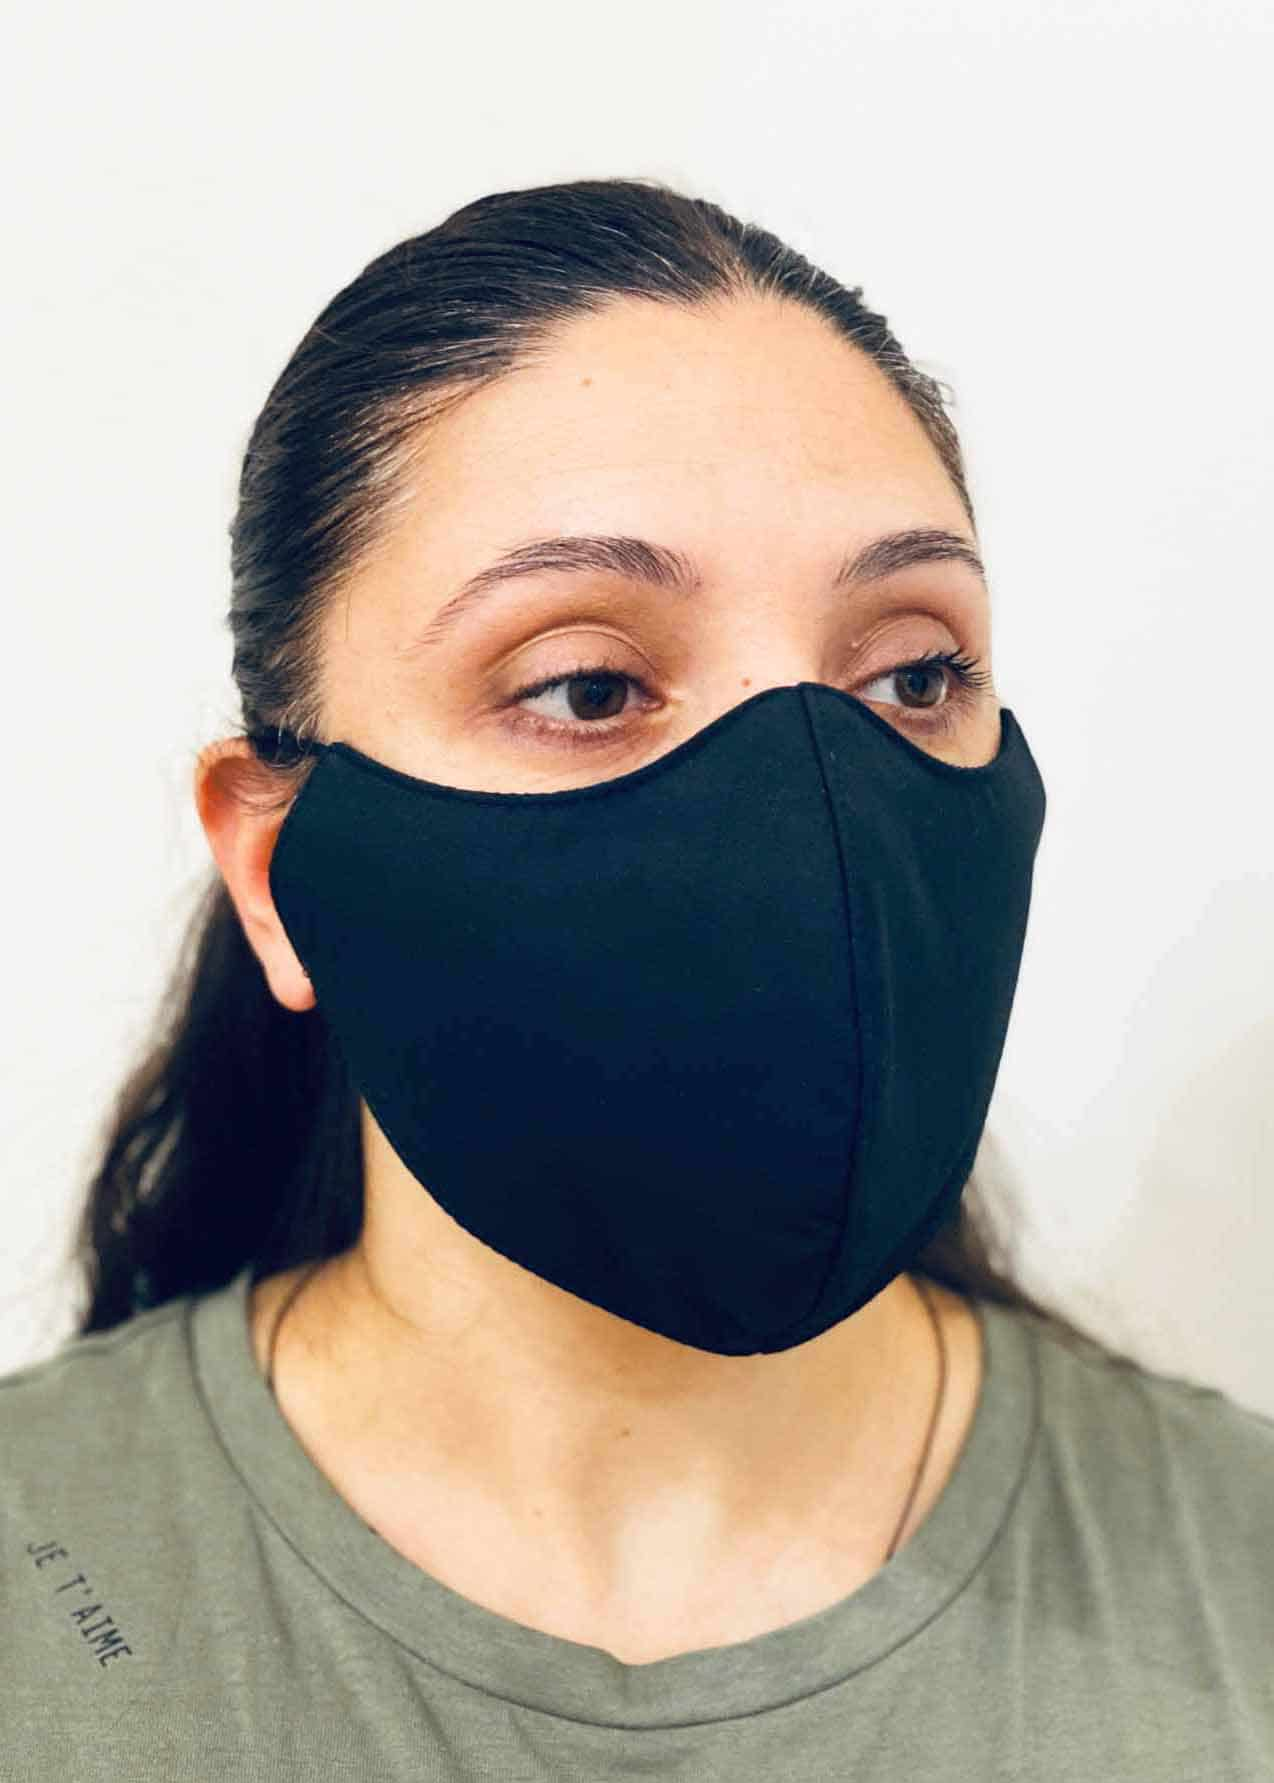 Ladies DHHS Face Mask by Laundry Box Melbourne